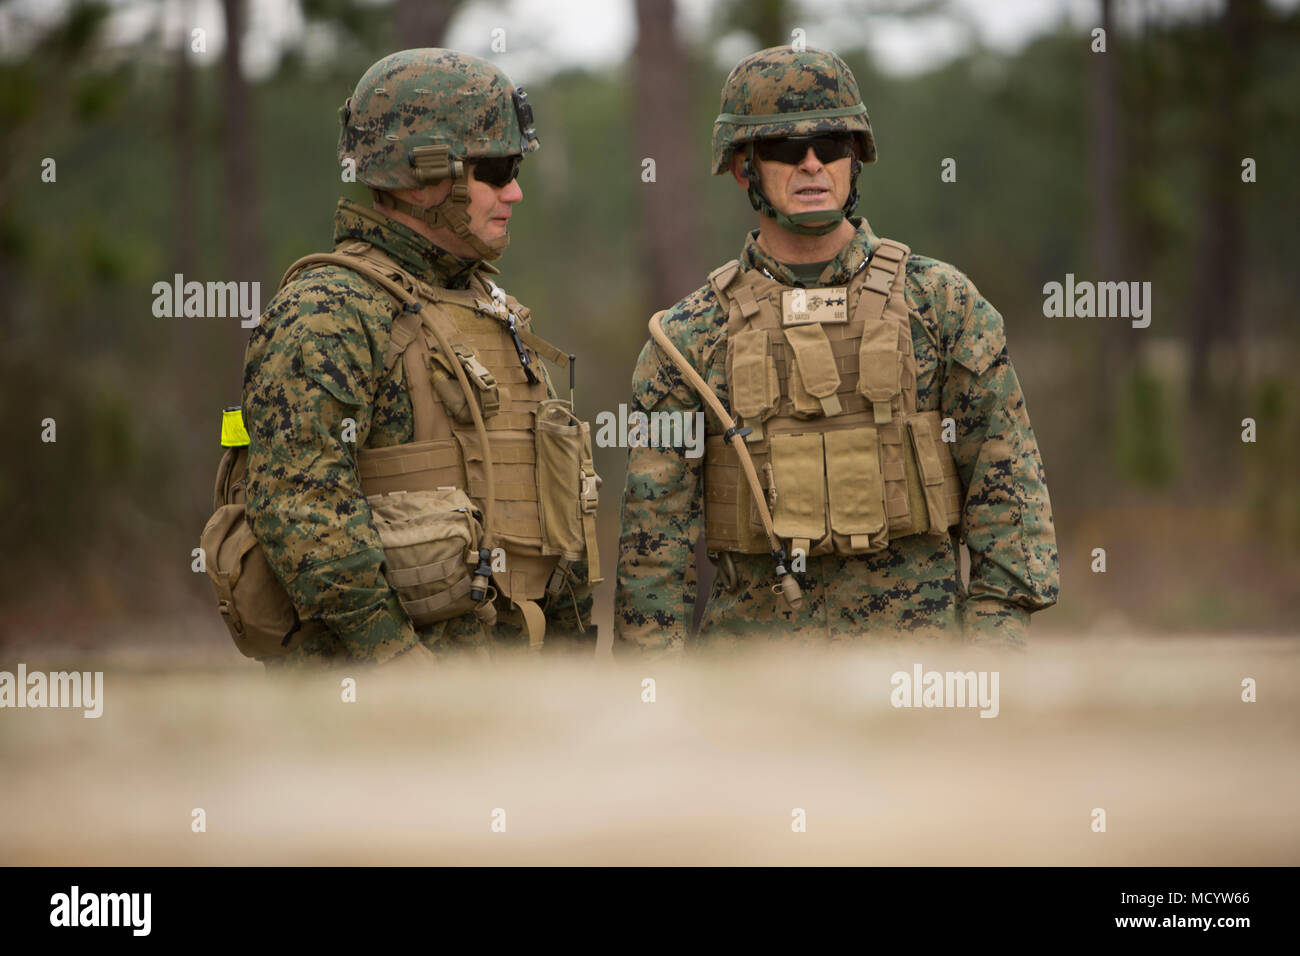 U.S. Marine Corps Maj. Gen. John K. Love, right, 2nd Marine Division Commanding General, observes Marines with 3rd Battalion, 2nd Marine Regiment, 2nd Marine Division, during a live-fire platoon attack at Range G-29 on Camp Lejeune, N.C., March 7, 2018. 2nd Marine Division provided funding and material for the creation of Range G-29 and tasked Marines with 2nd Combat Engineer Battalion to finalize the production of the range. (U.S. Marine Corps photo by Cpl. Justin X. Toledo). - Stock Image